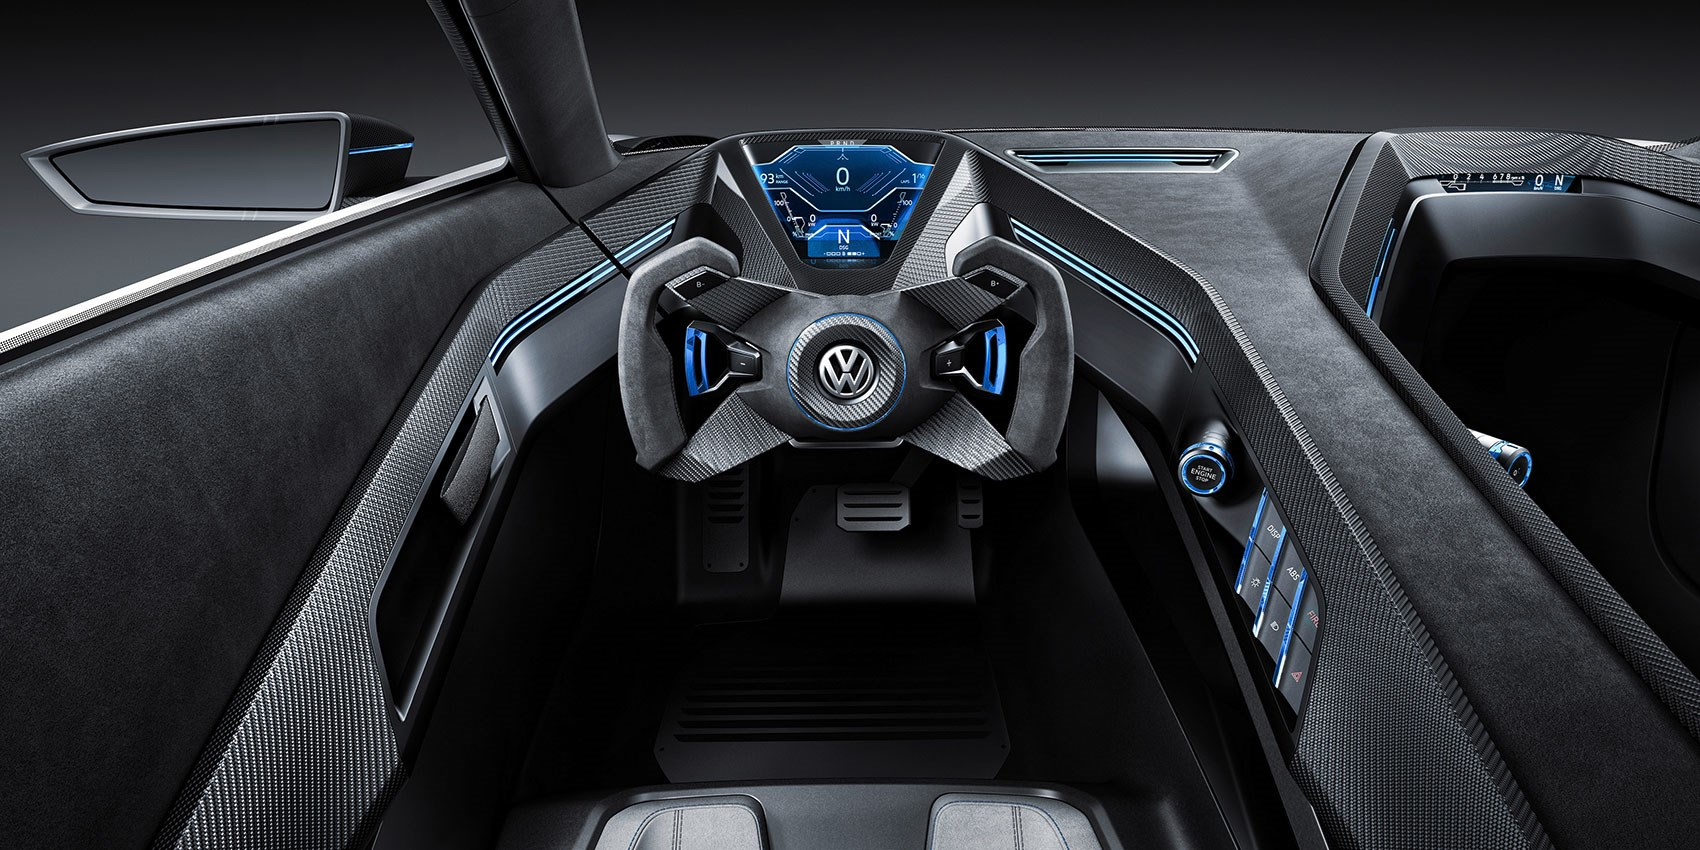 vw golf gte sport the outrageous carbon bodied 400bhp hybrid gti by car magazine. Black Bedroom Furniture Sets. Home Design Ideas